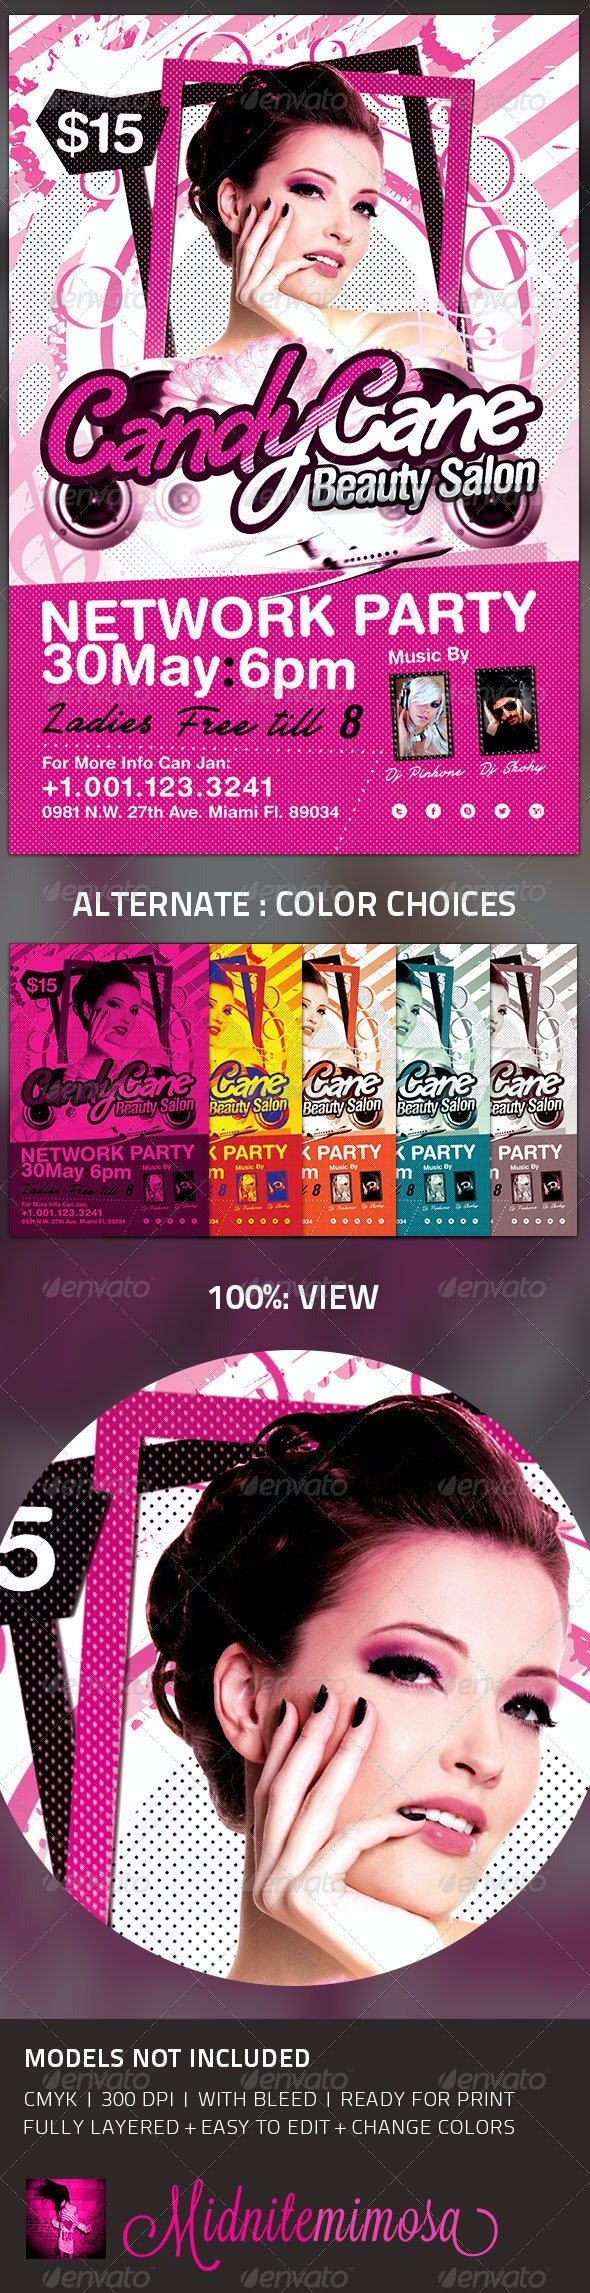 Beauty Salon - Network Party Template - Events Flyers